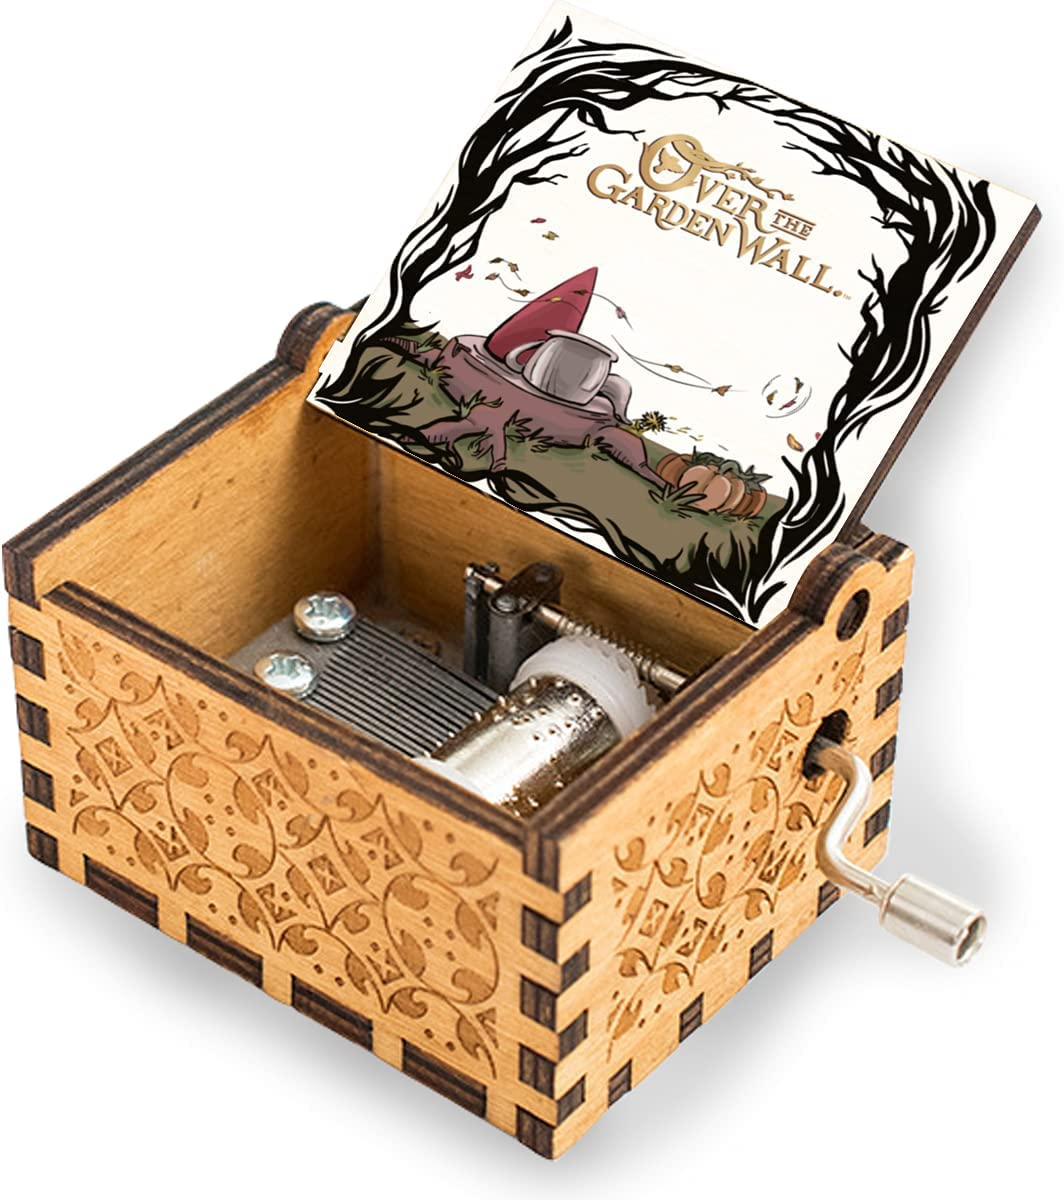 niaoyun-Over The Garden Wall-Wood/Wooden Music Box to My Love for Boyfriend Girlfriend Hand Crank Engraved Musical Box